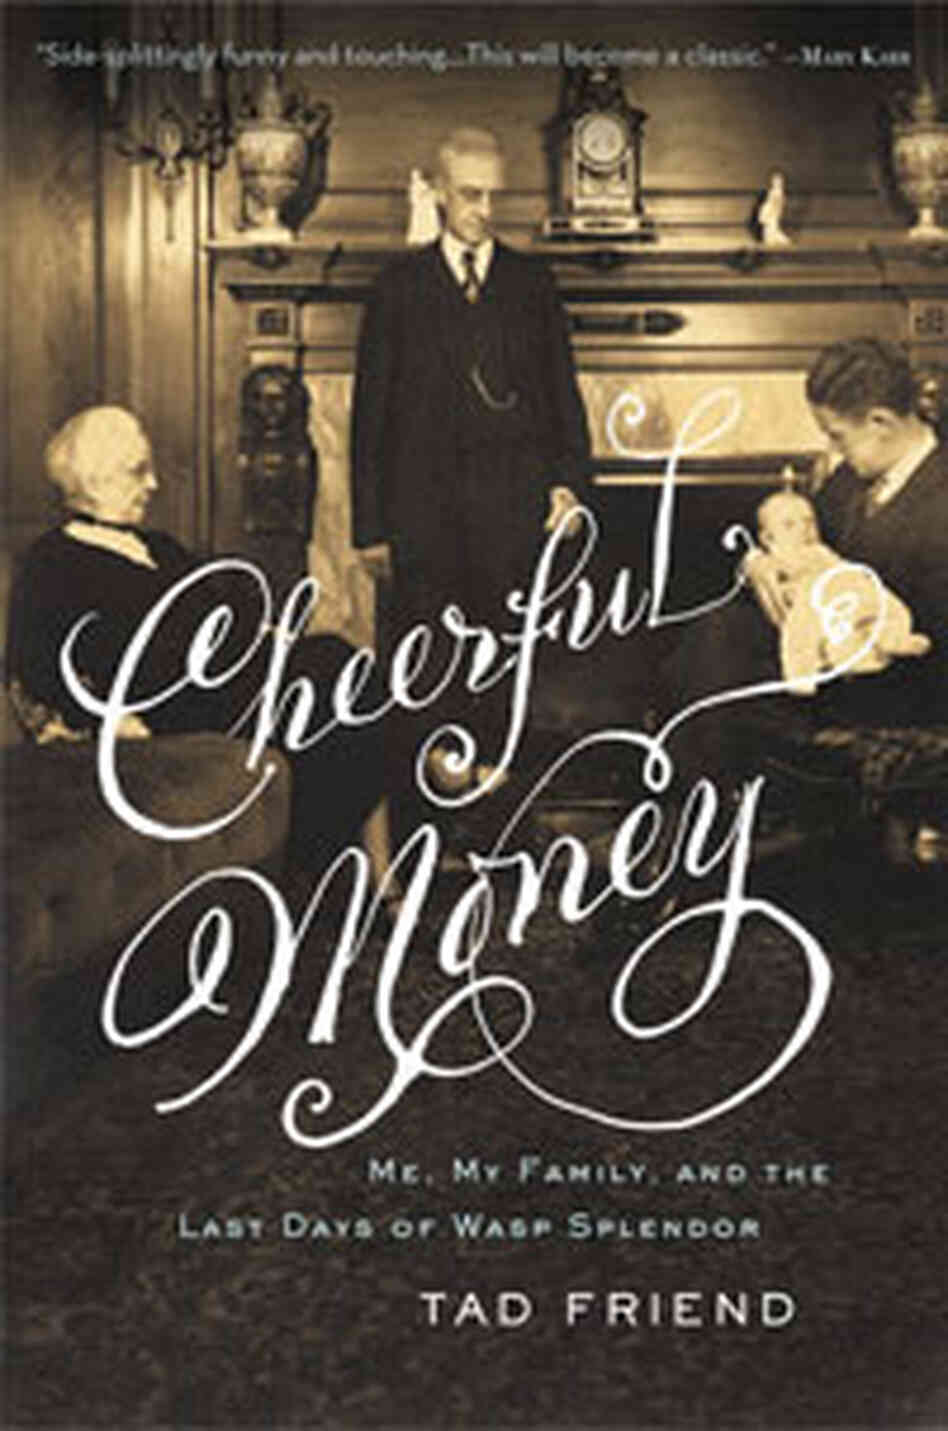 'Cheerful Money' book cover